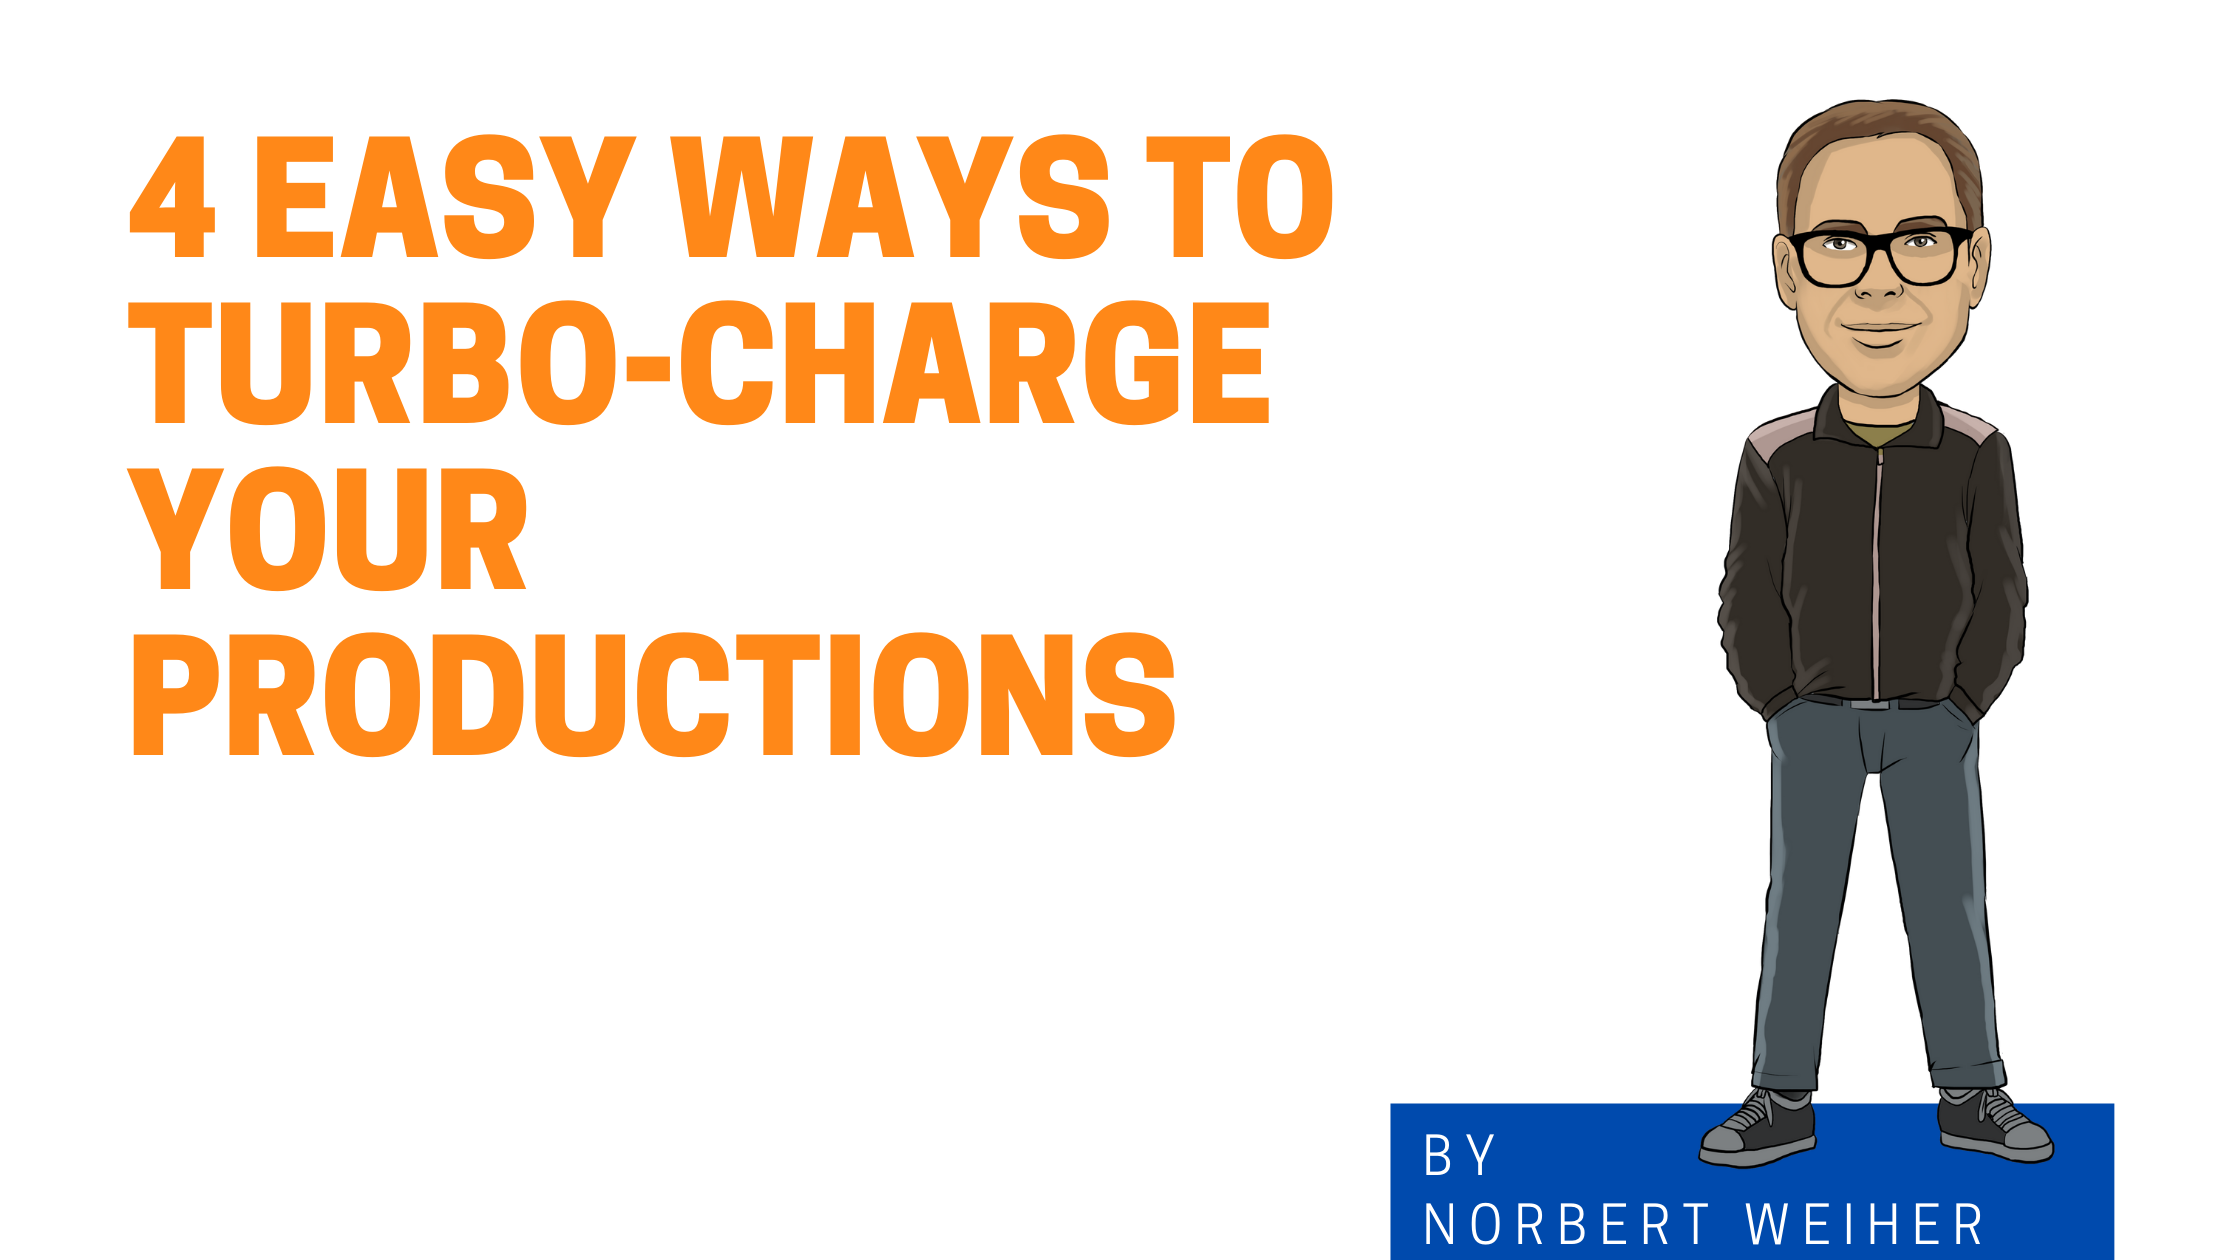 Less is more - four ways to turbo-charge your productions by simplifying them